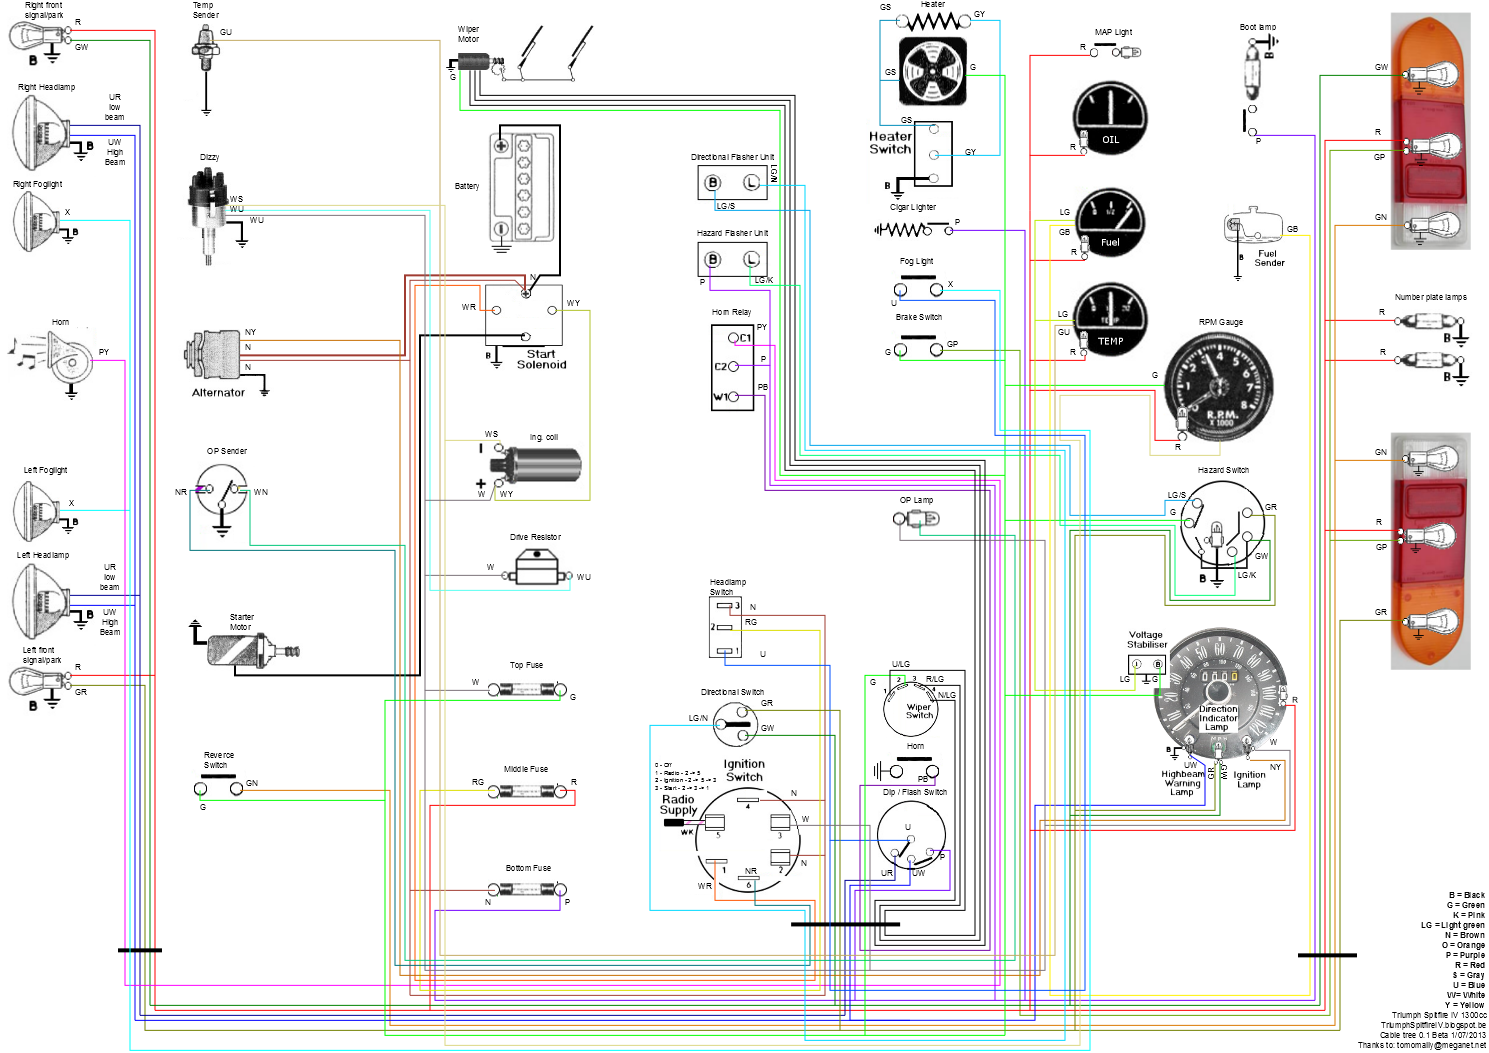 spitfire iv wiring diagram mk4 wiring diagram mk4 tdi wiring diagram \u2022 wiring diagrams j 2005 E55 AMG Performance Parts at aneh.co